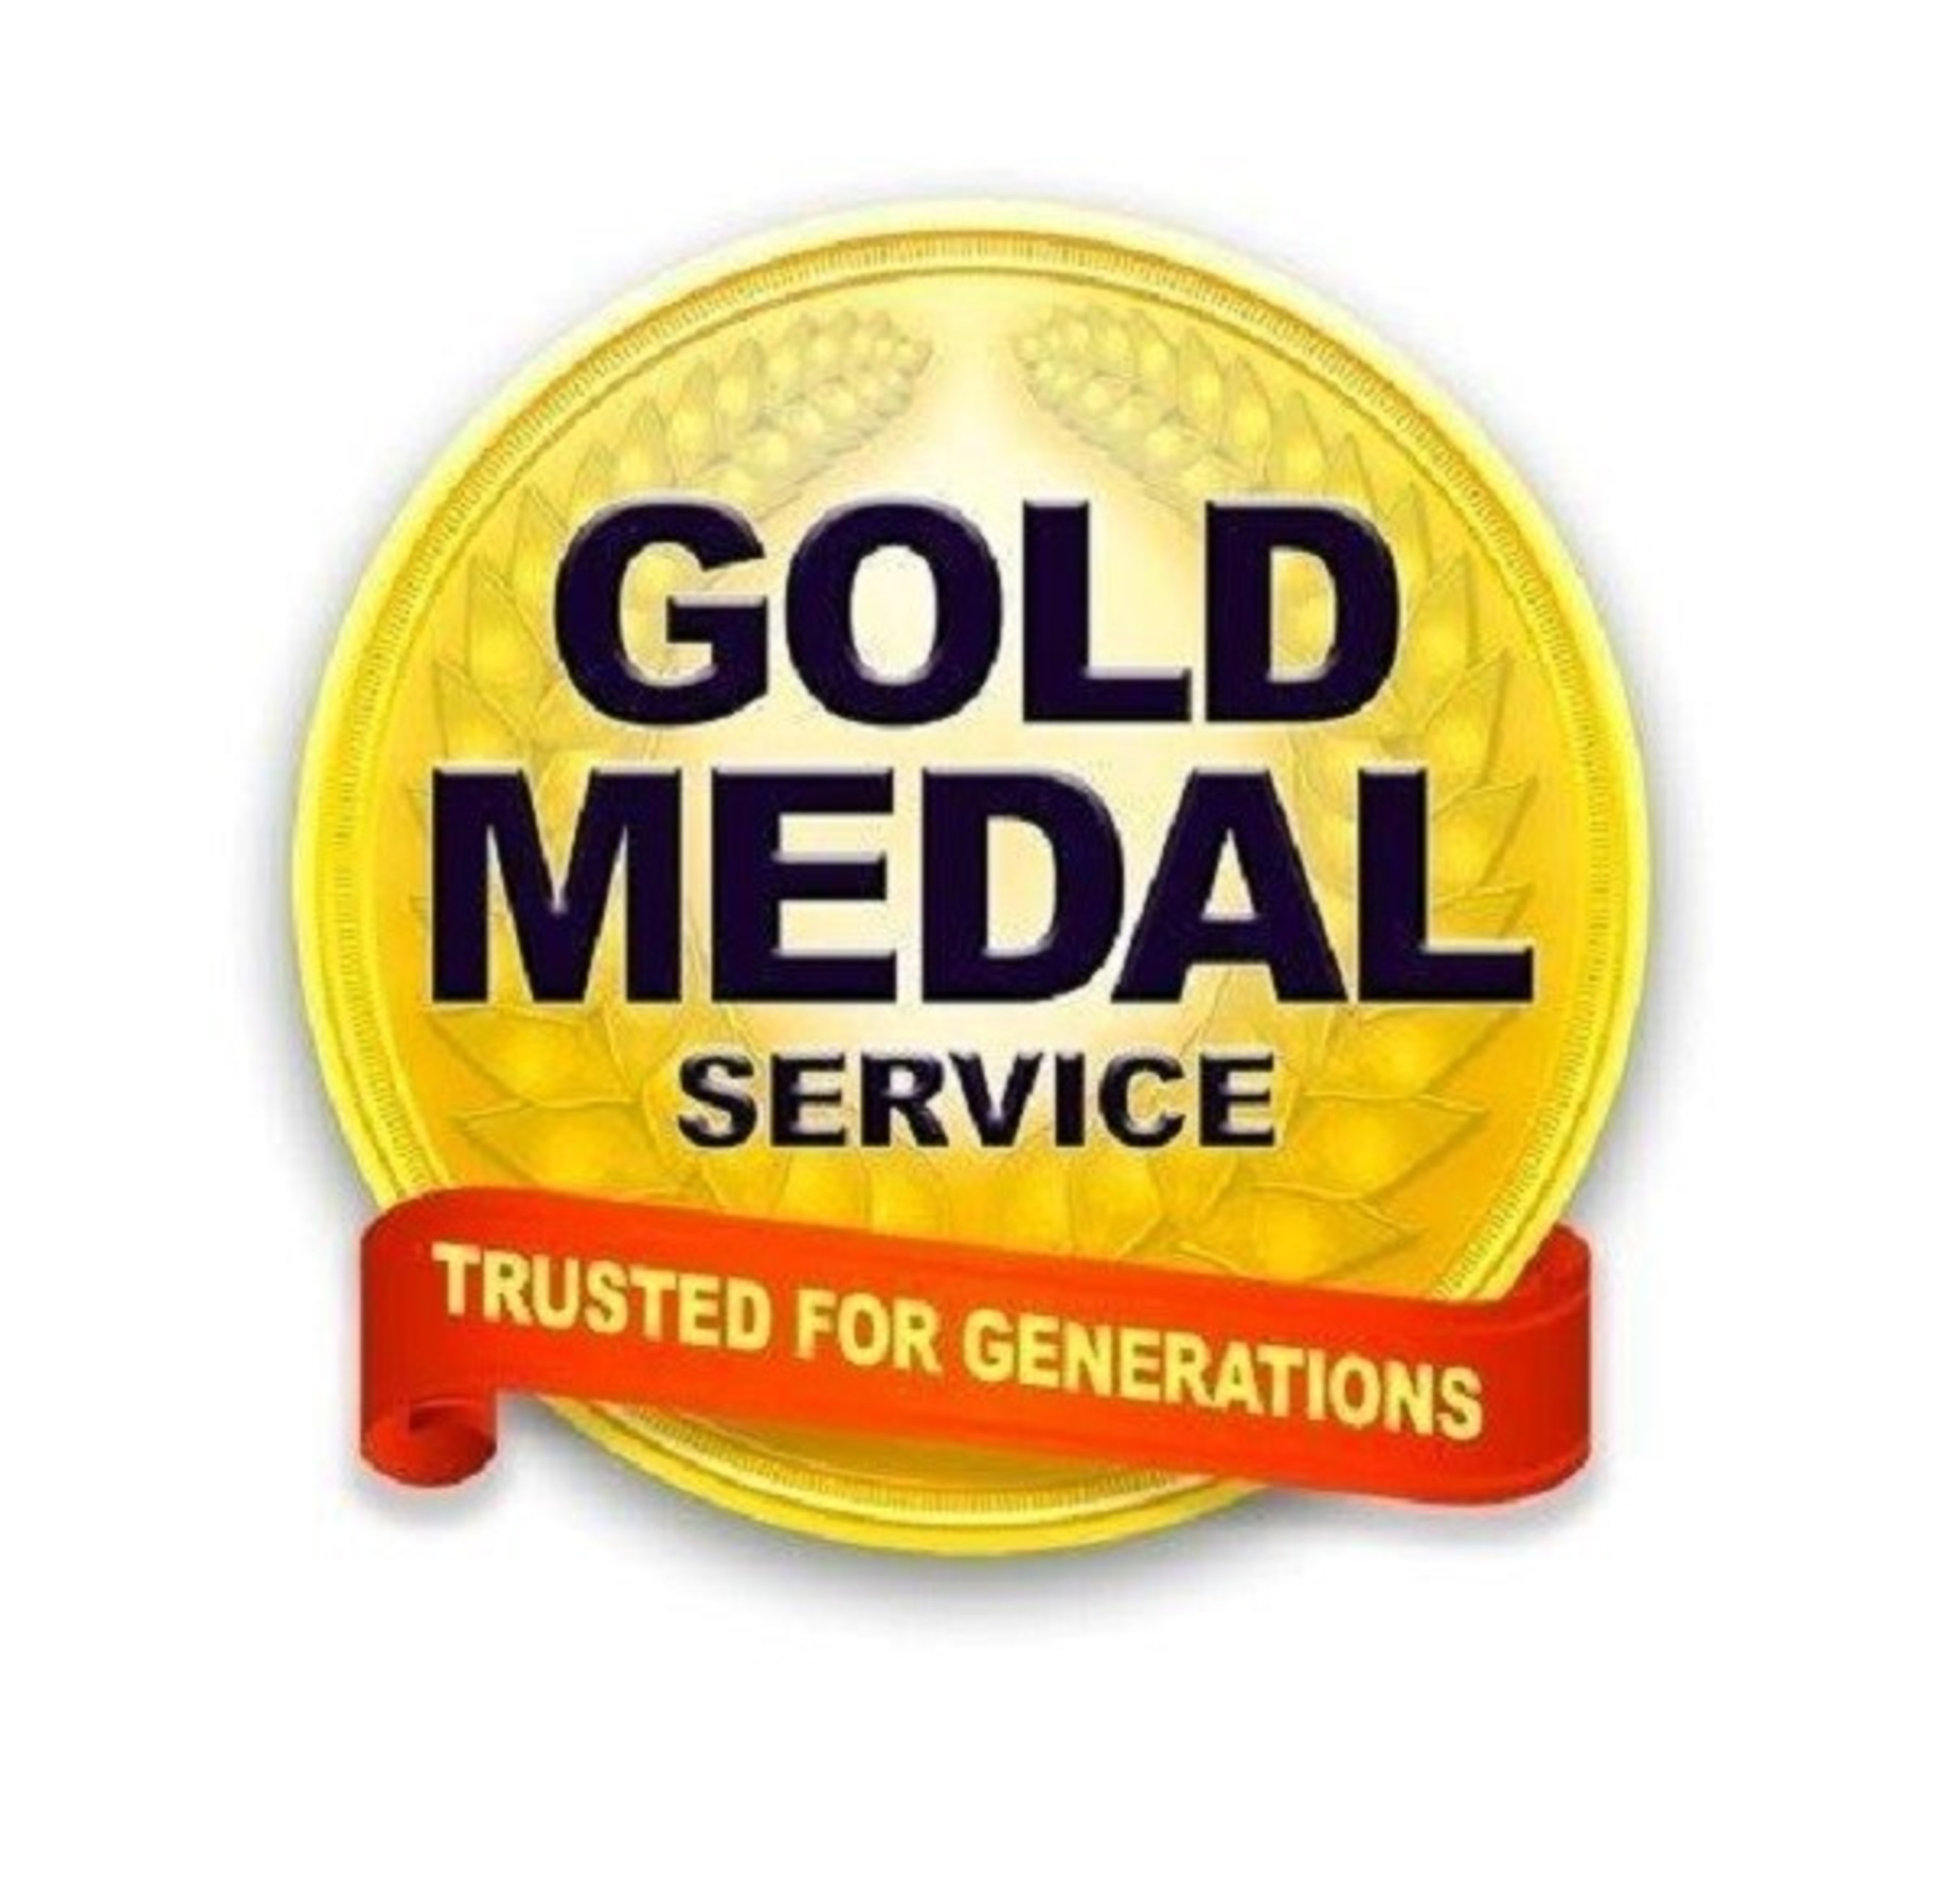 Gold Medal Service Donates More Than $30,000 in 2015